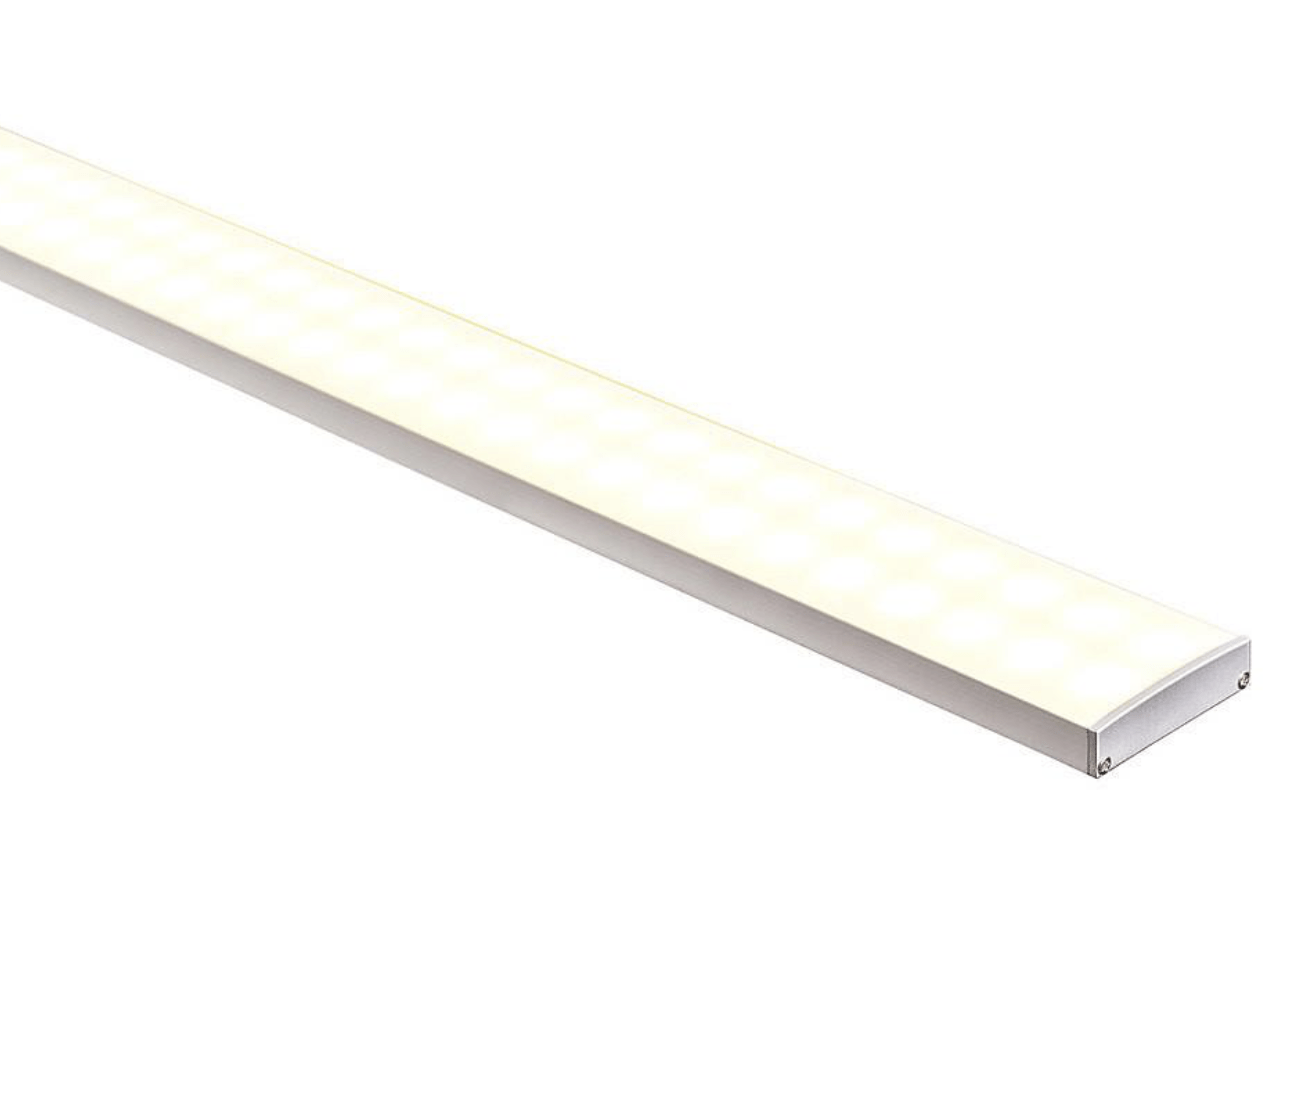 Profiles Surface Mounted Profile - Large Shallow Square - HV9693-4511 lighting shops lighting stores LED lights  lighting designer